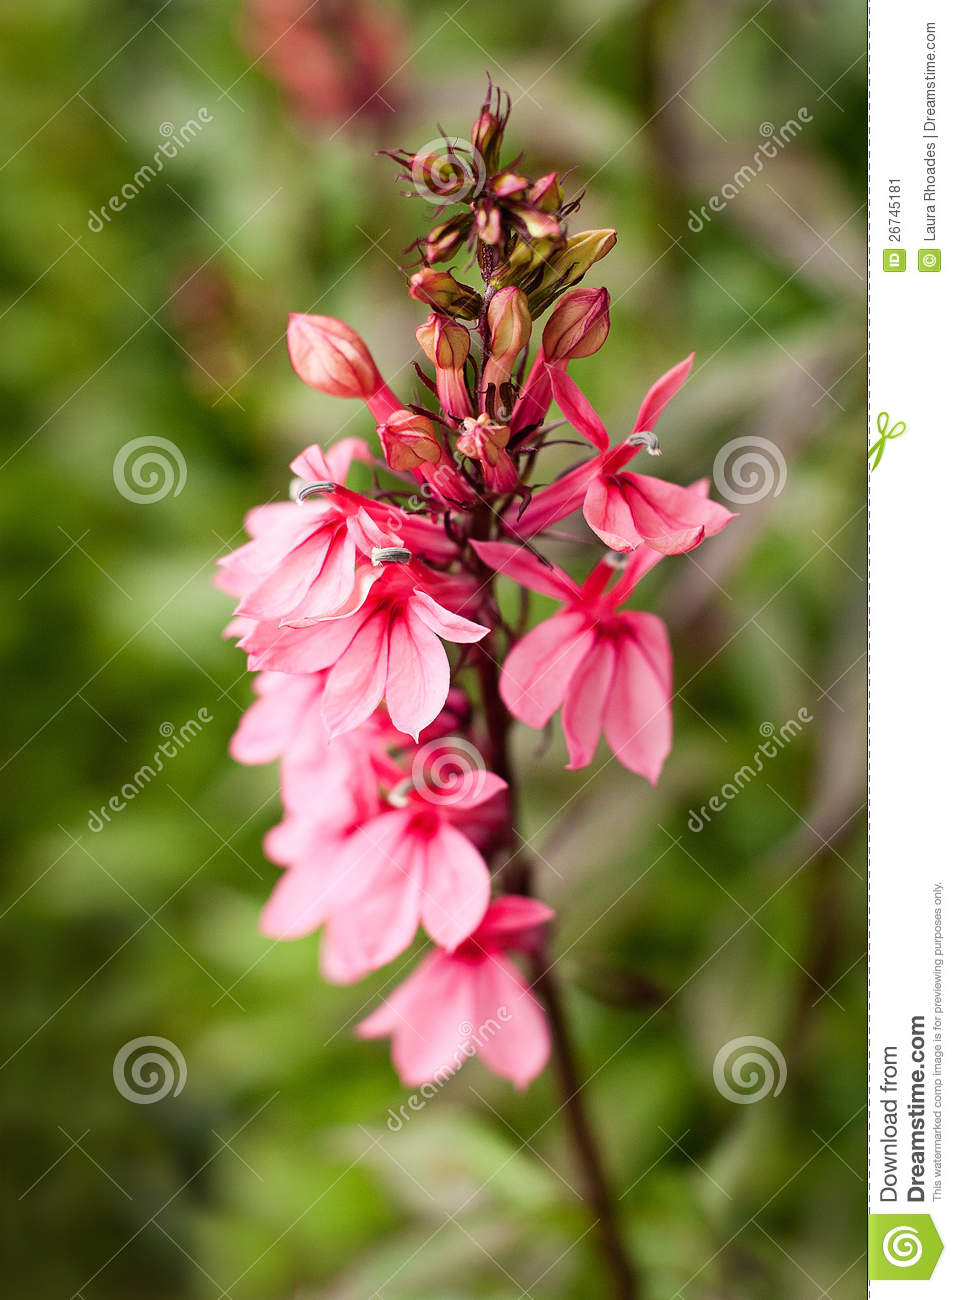 Tall Pink Flower In Garden Stock Image Image Of Garden 26745181